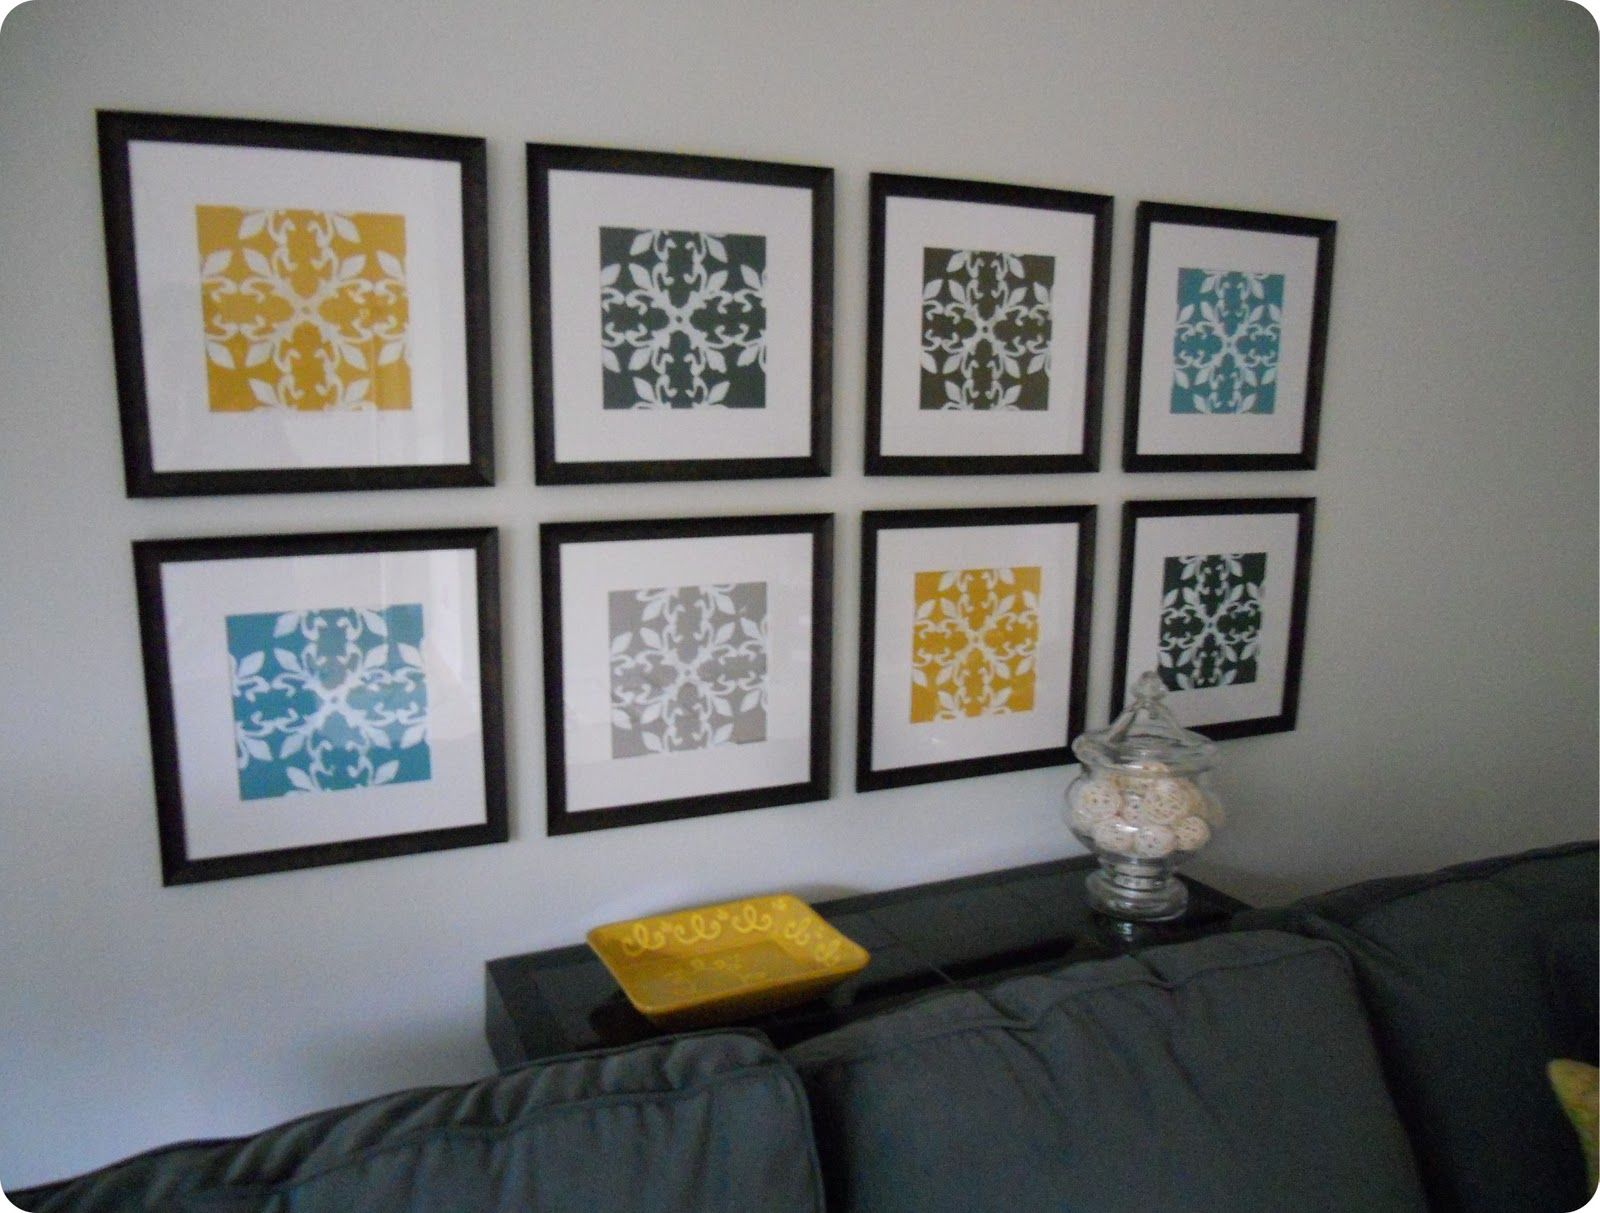 Gallery Wall Made From Inexpensive Frames, Scrapbook Paper